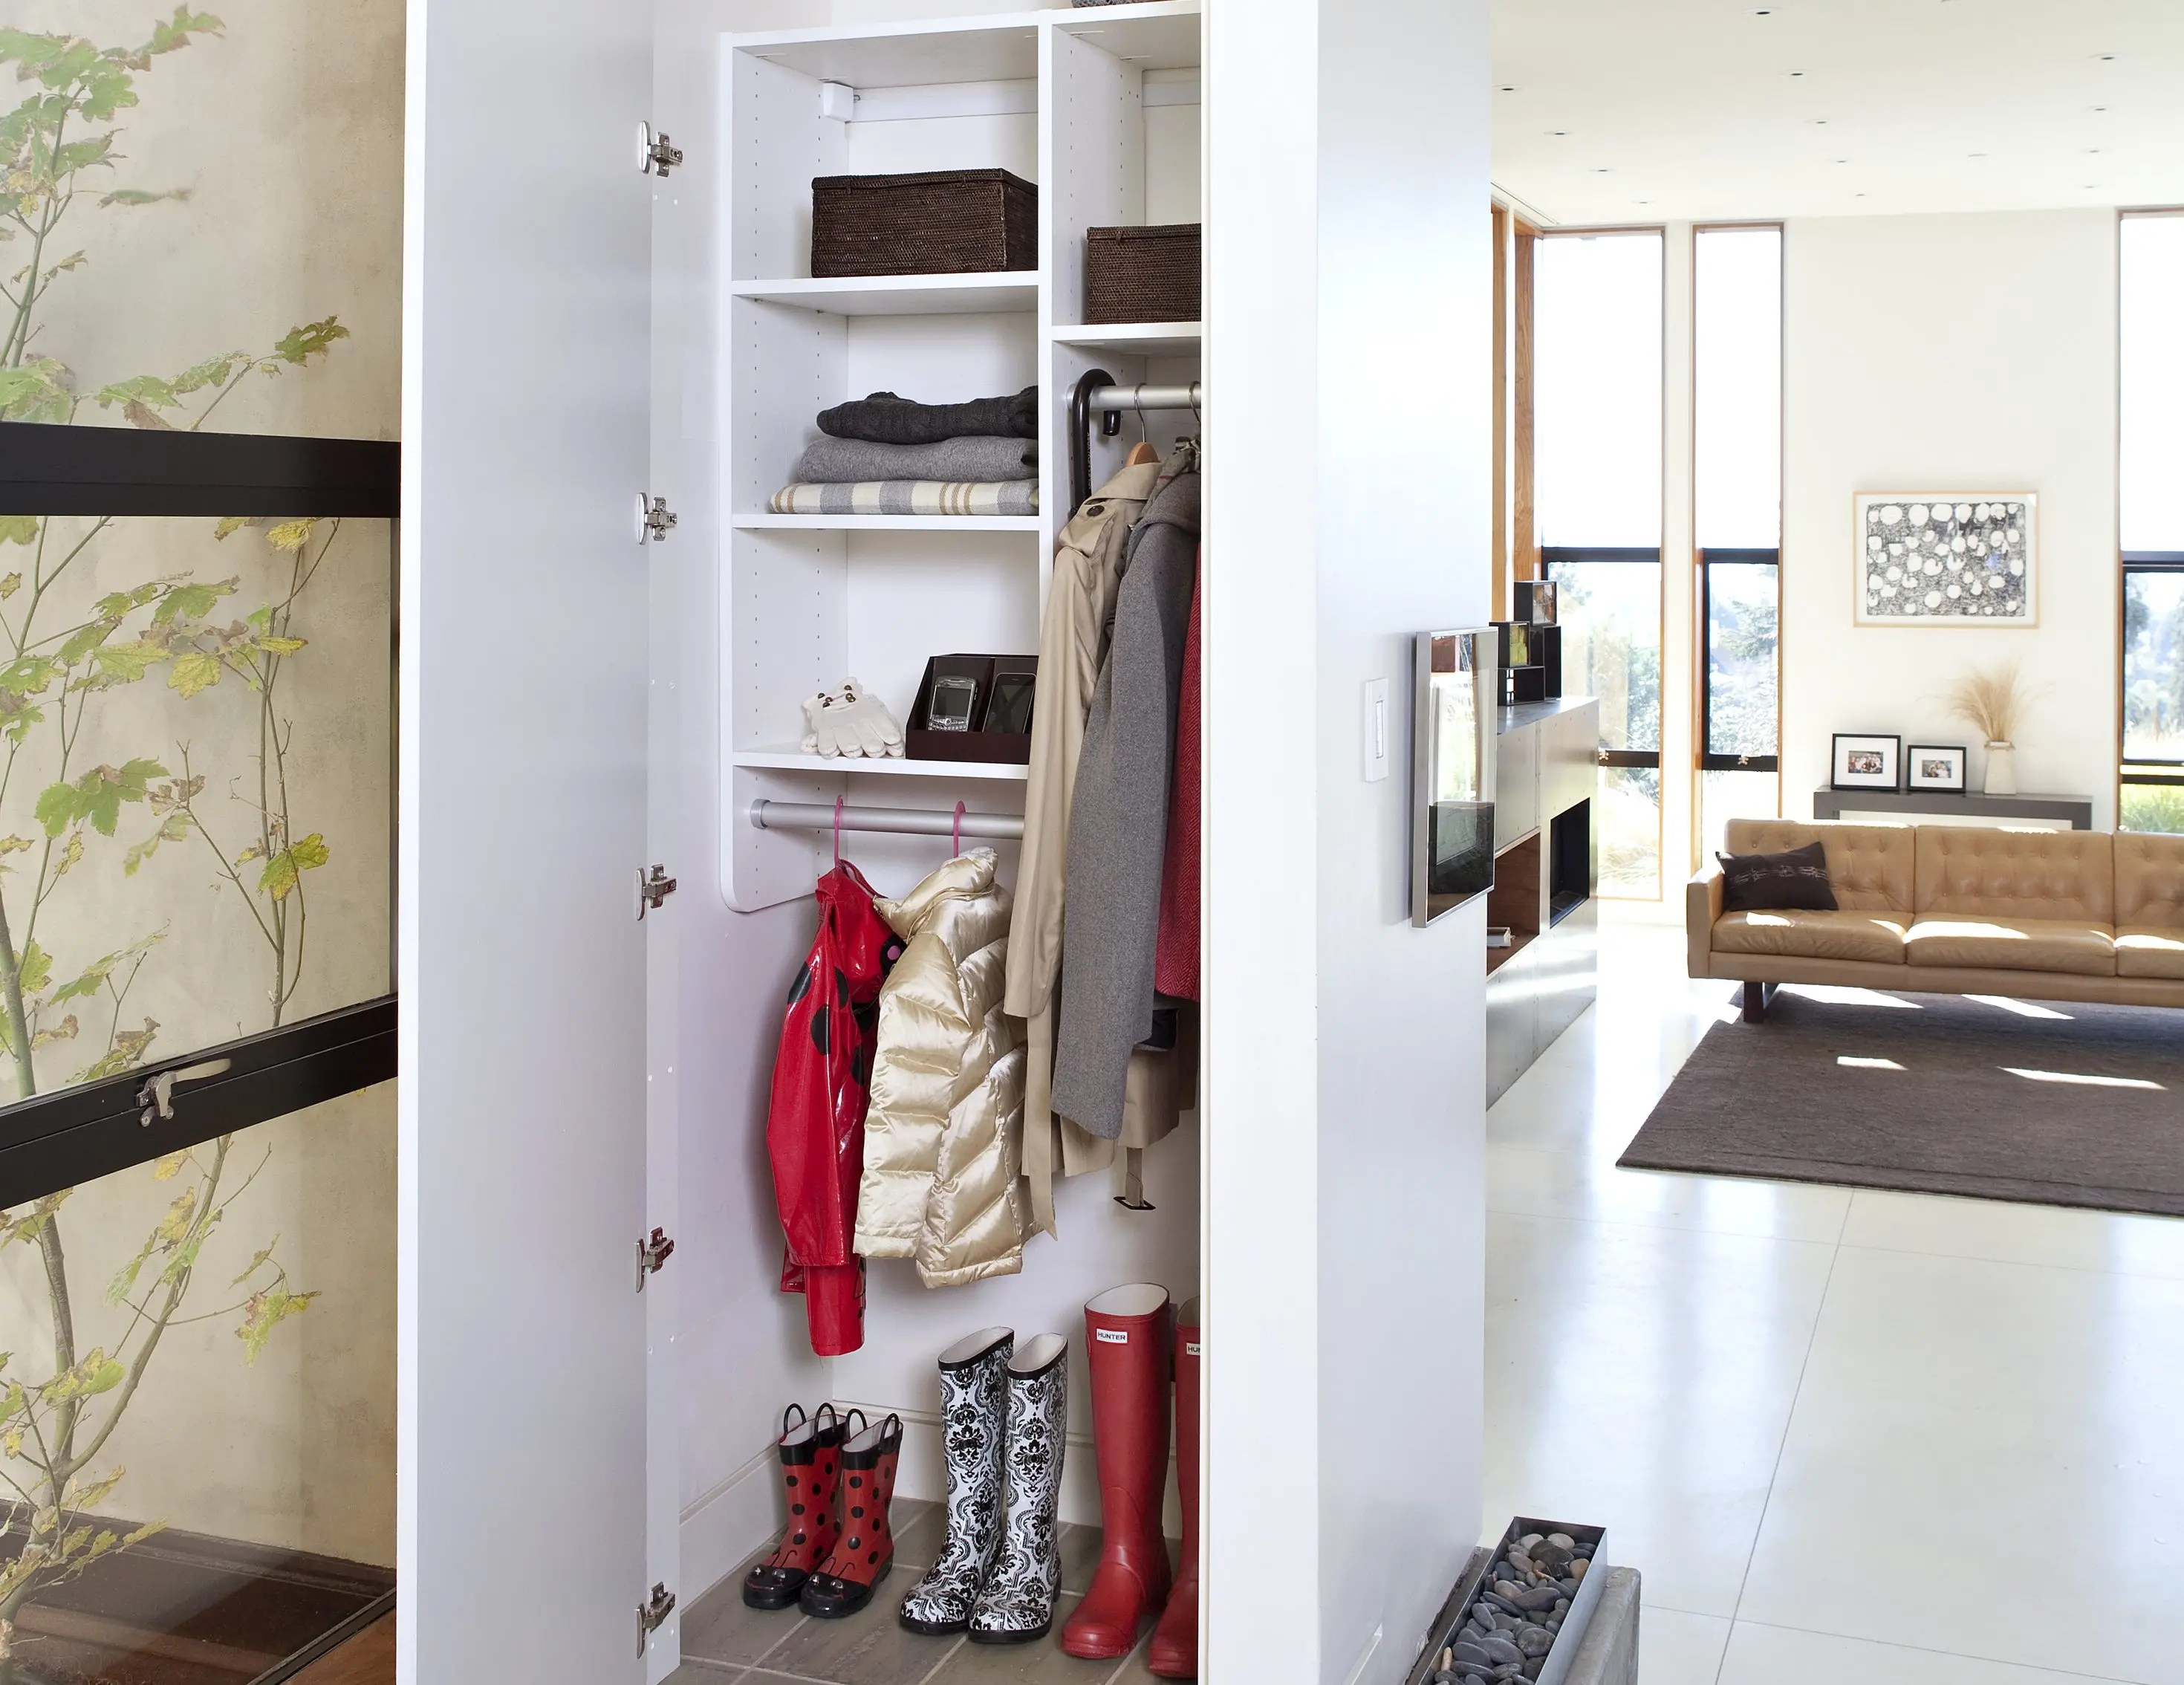 Linen Closet Organizer Systems Linen Cabinets And Hall Closet Organizers By California Closets